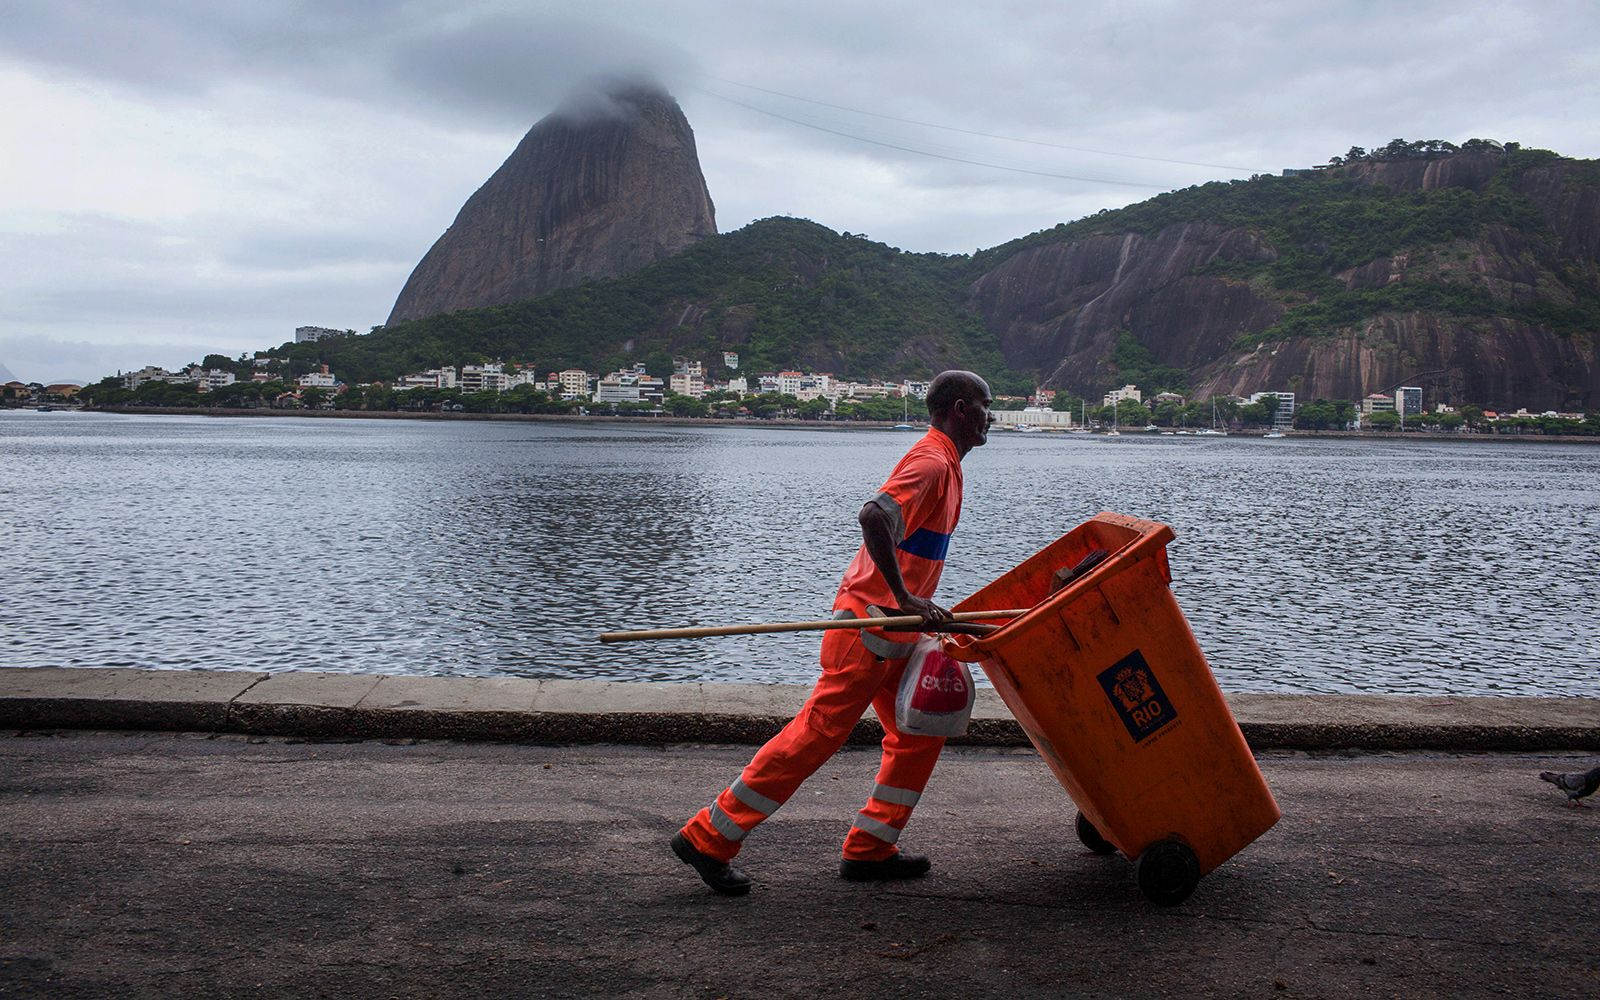 trash and contamination continue to pollute olympic training and